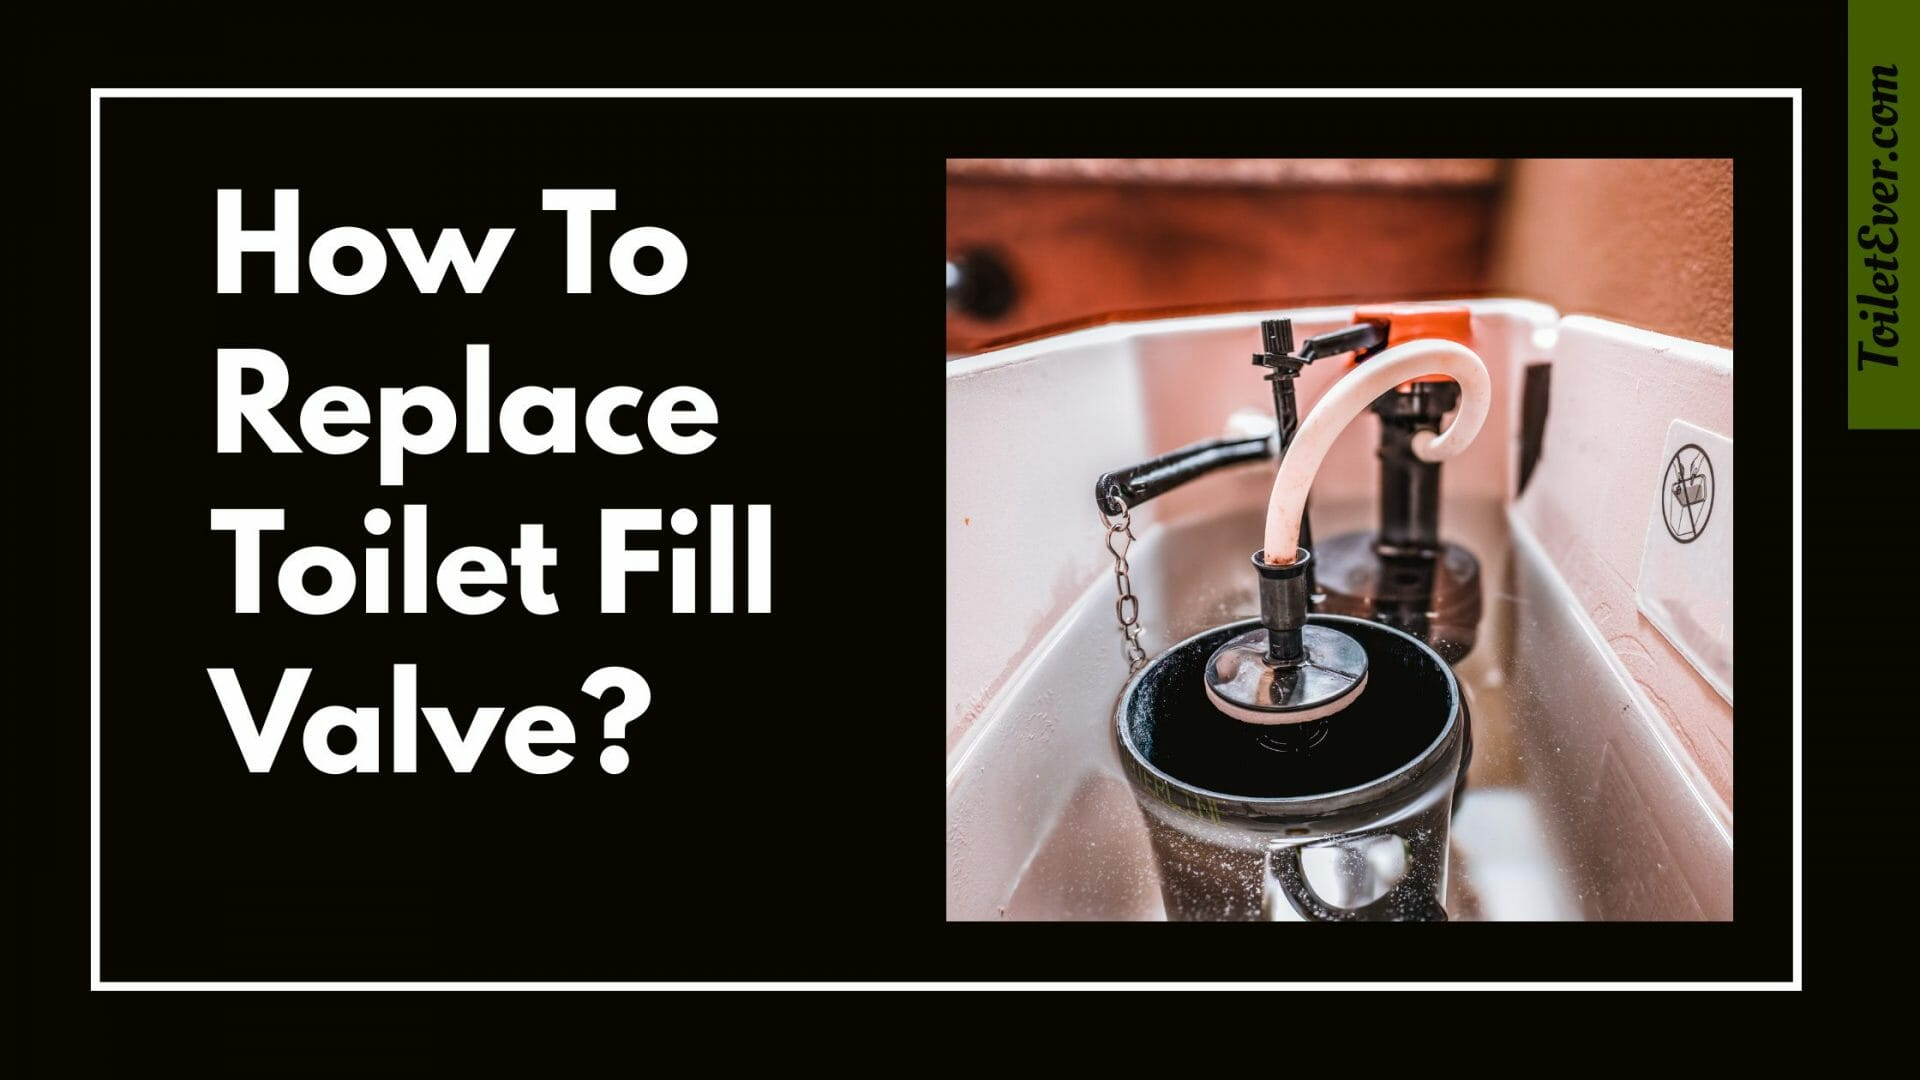 How to Replace Toilet Fill Valve